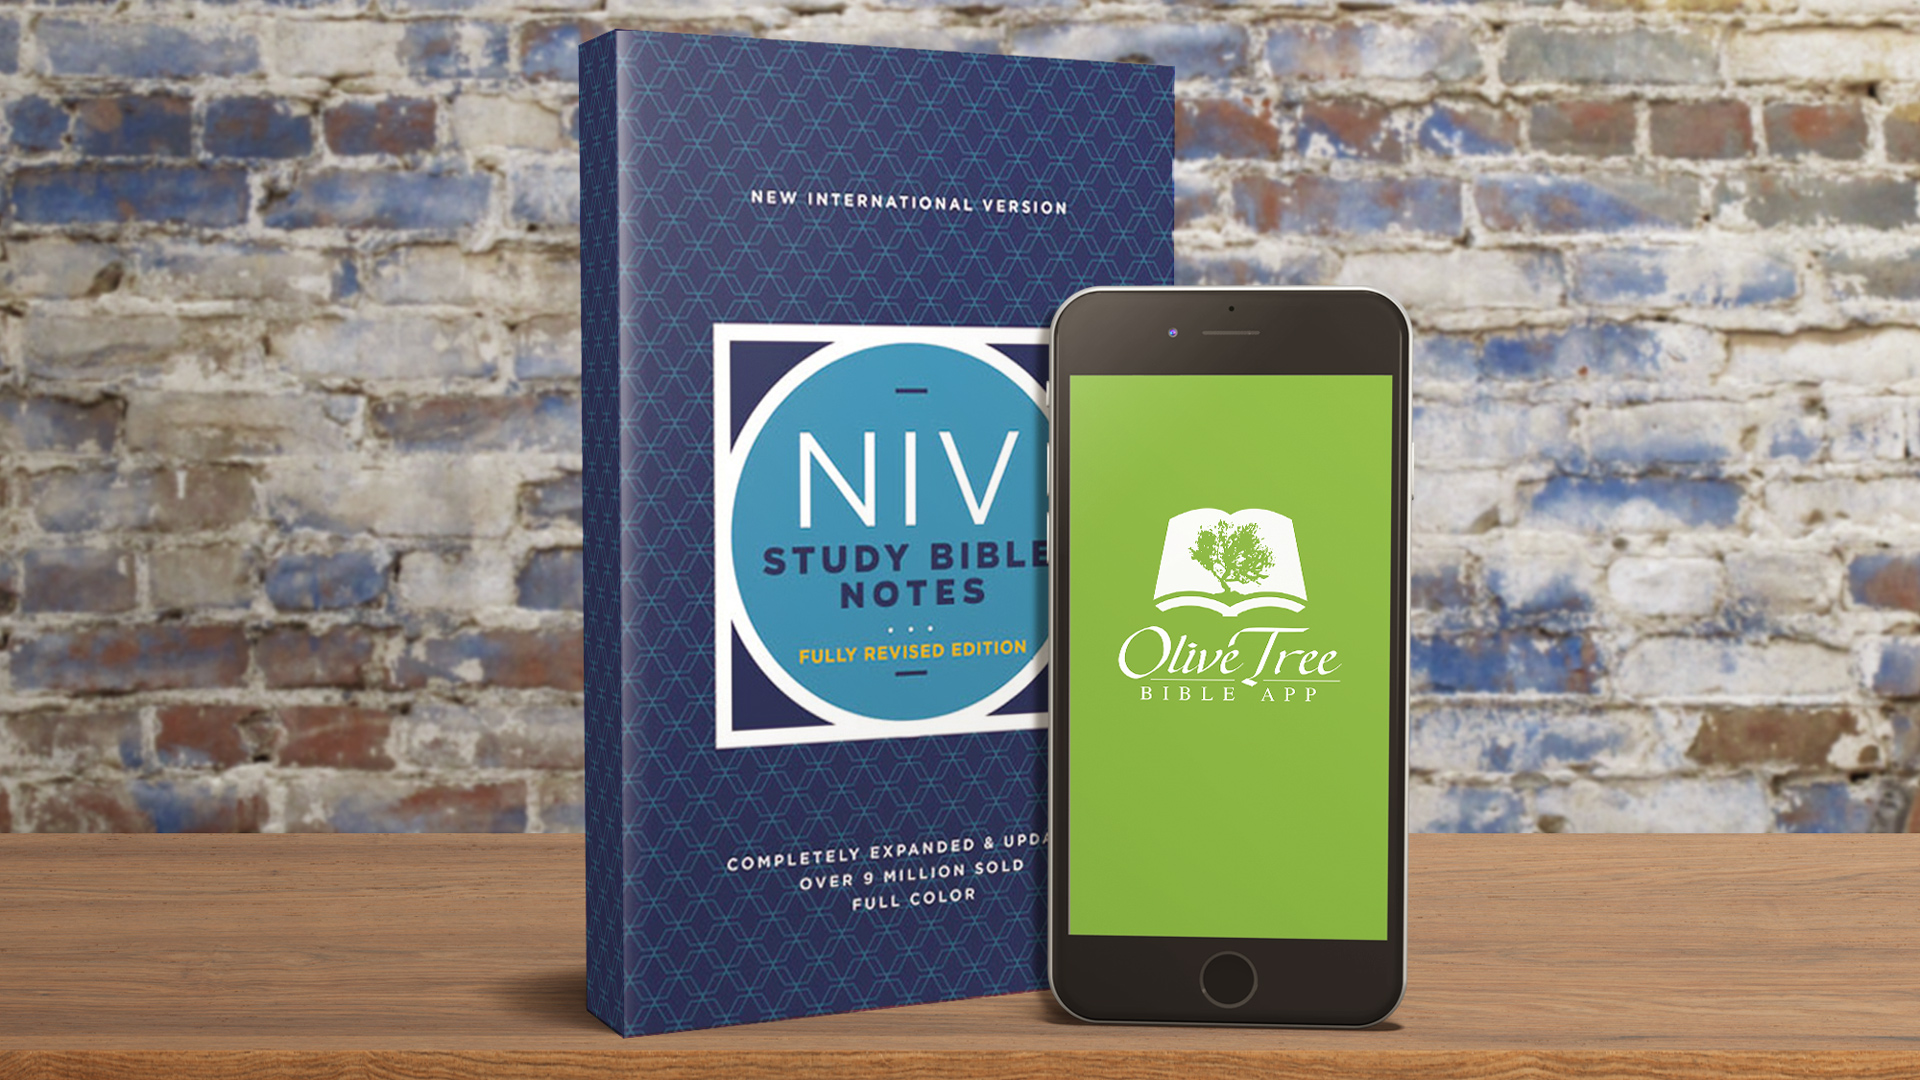 NIV Study Bible Fully Revised